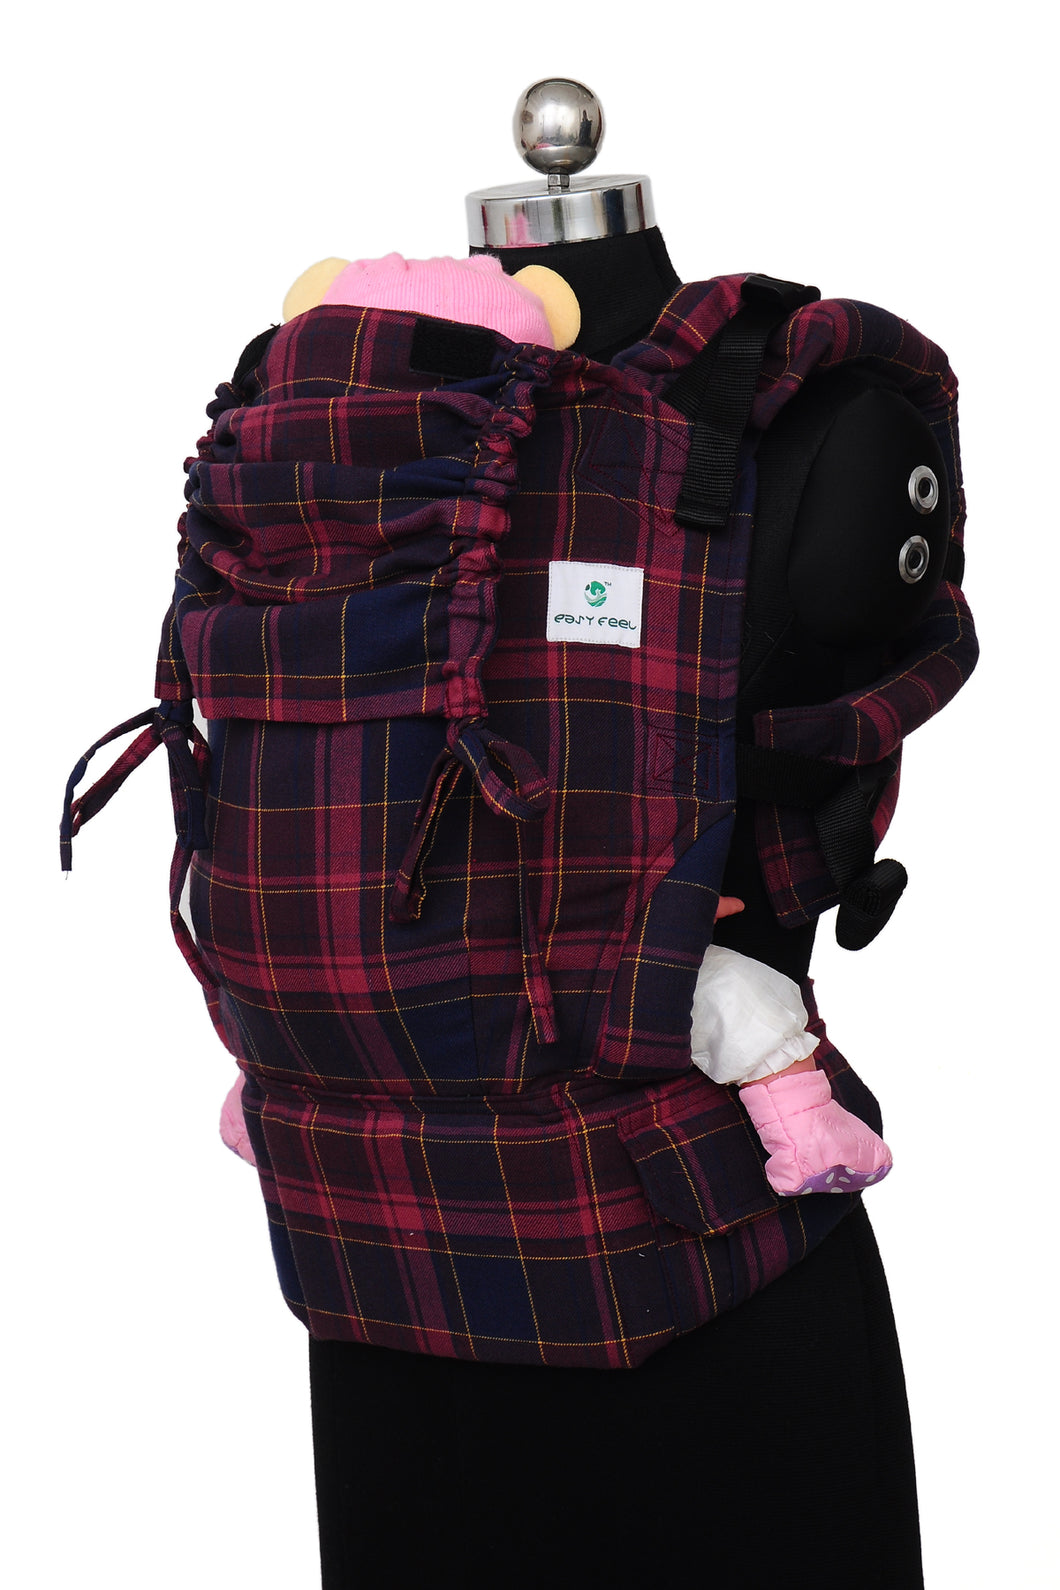 Easy Feel Full Buckle Ergonomic Soft Structured Carrier (Preschool Size) - Ravish